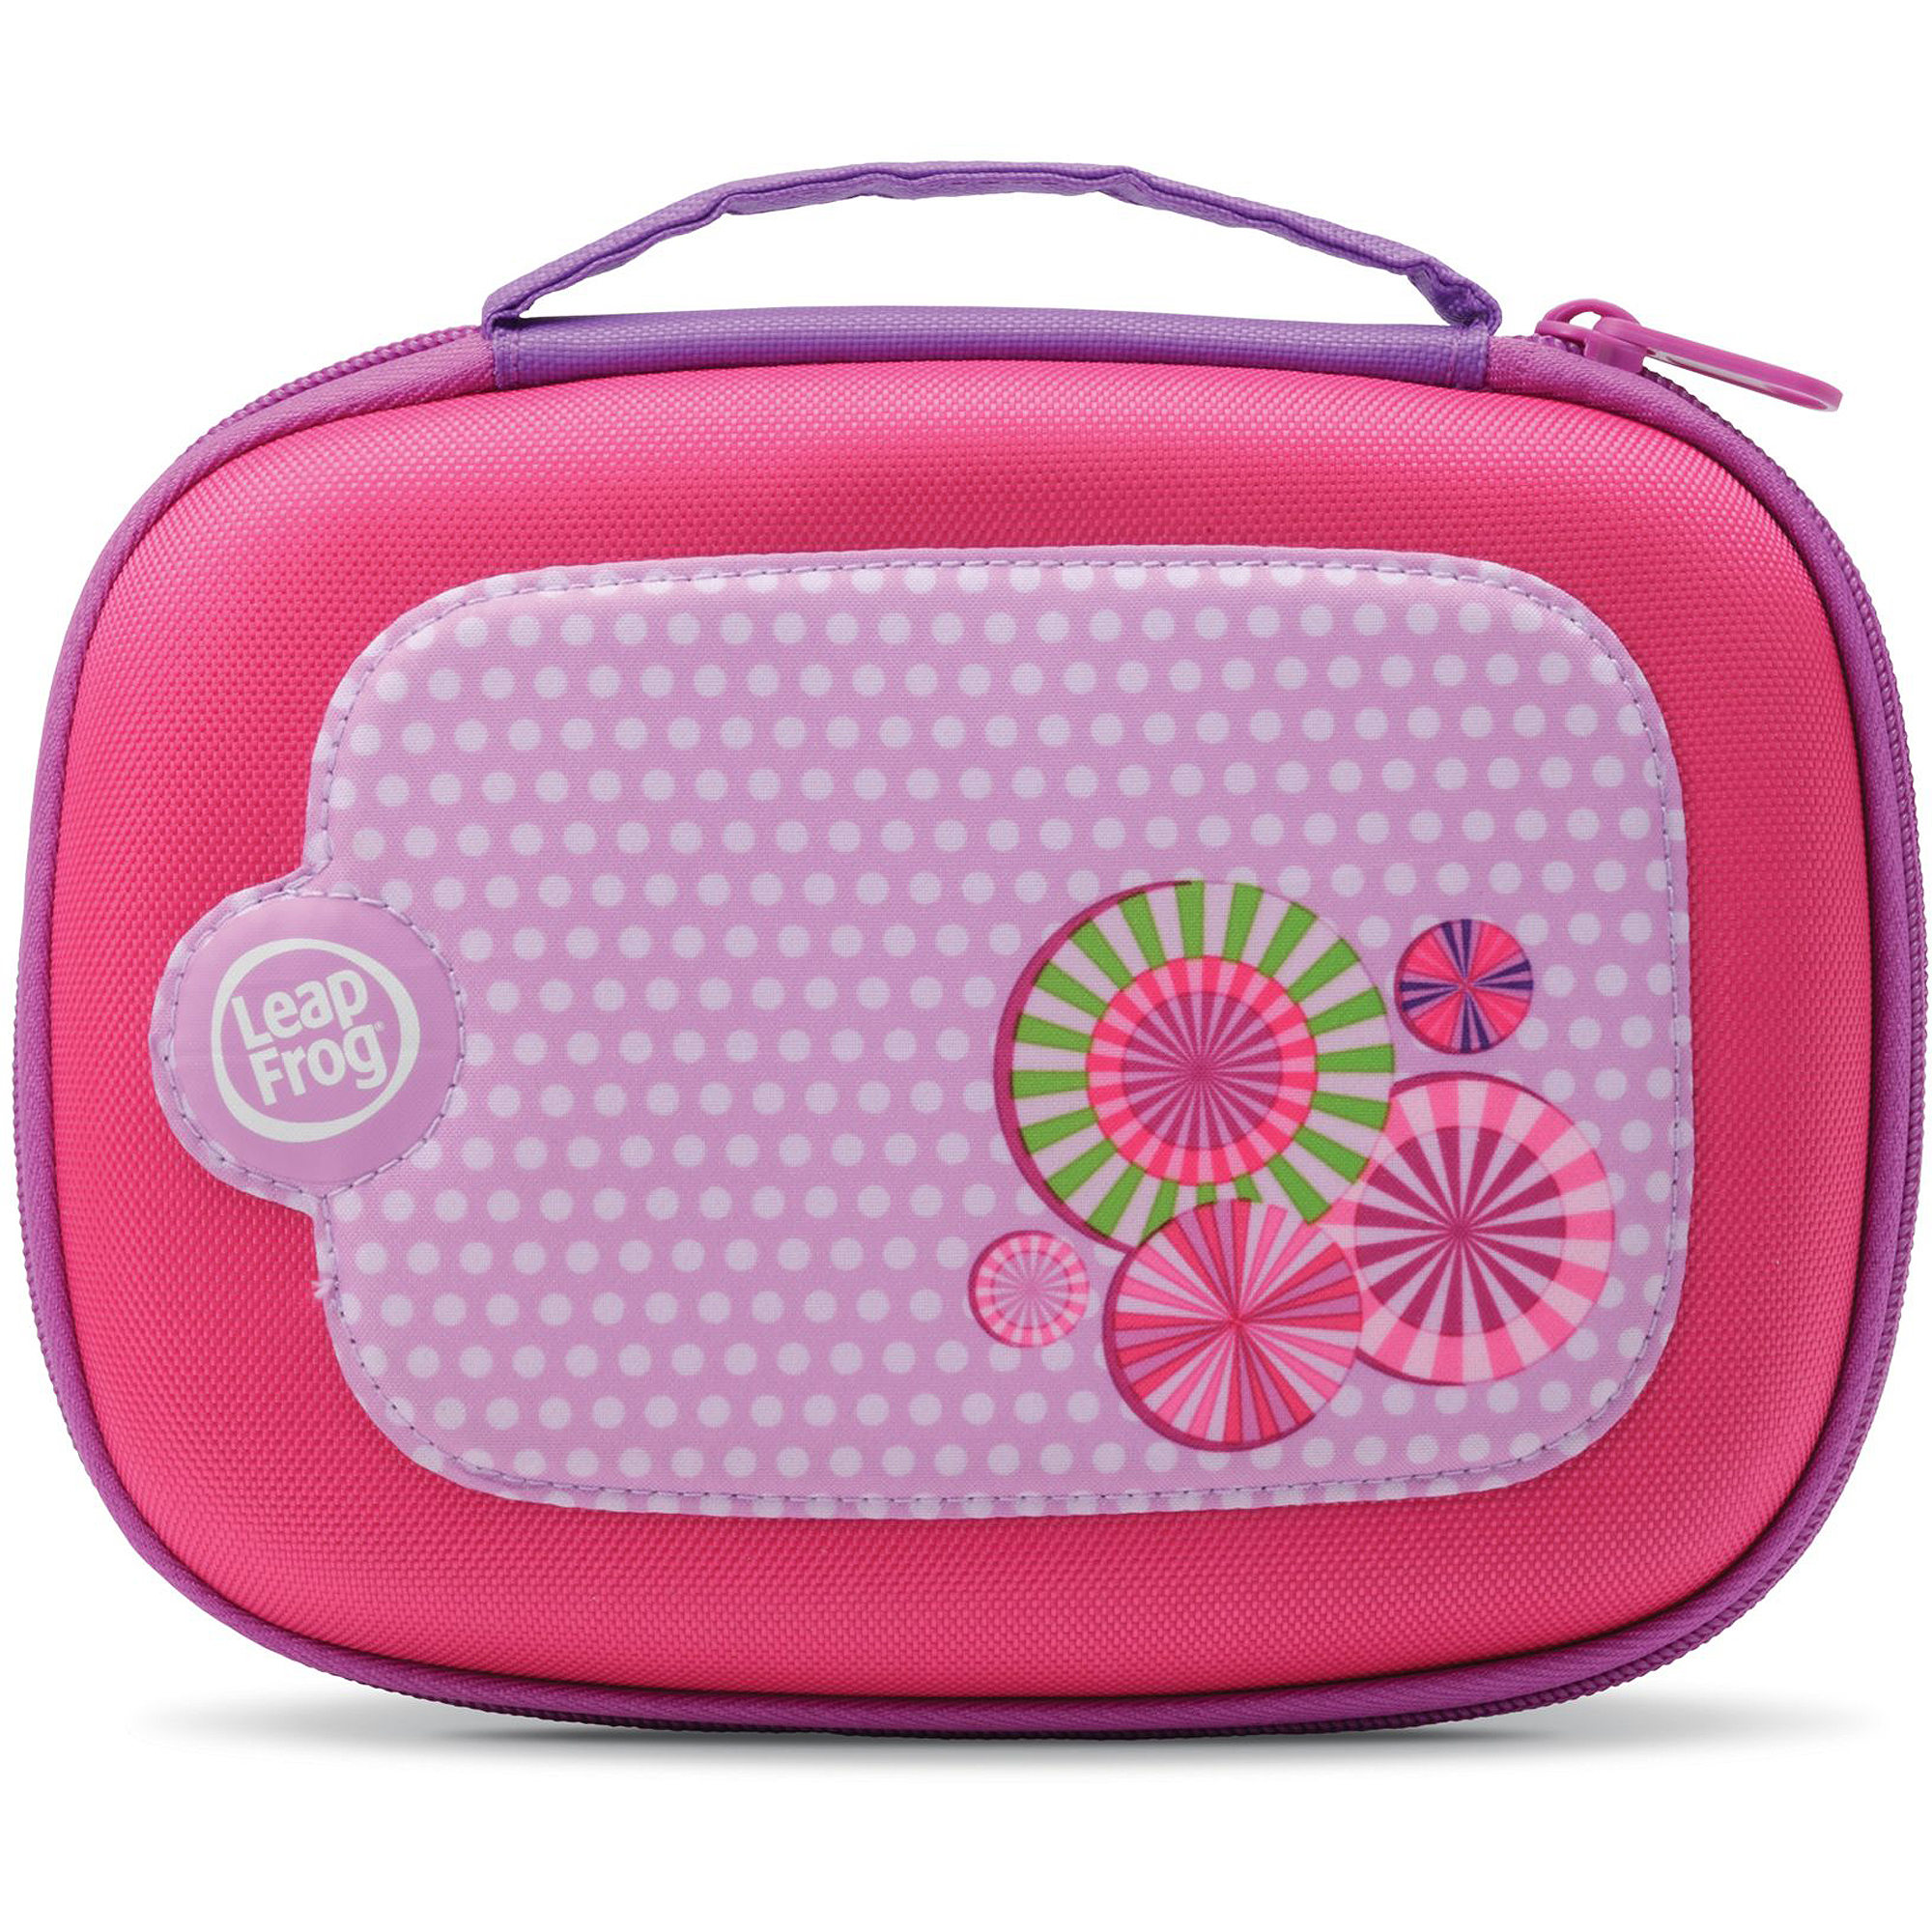 "LeapFrog 5"" Carrying Case, Pink"